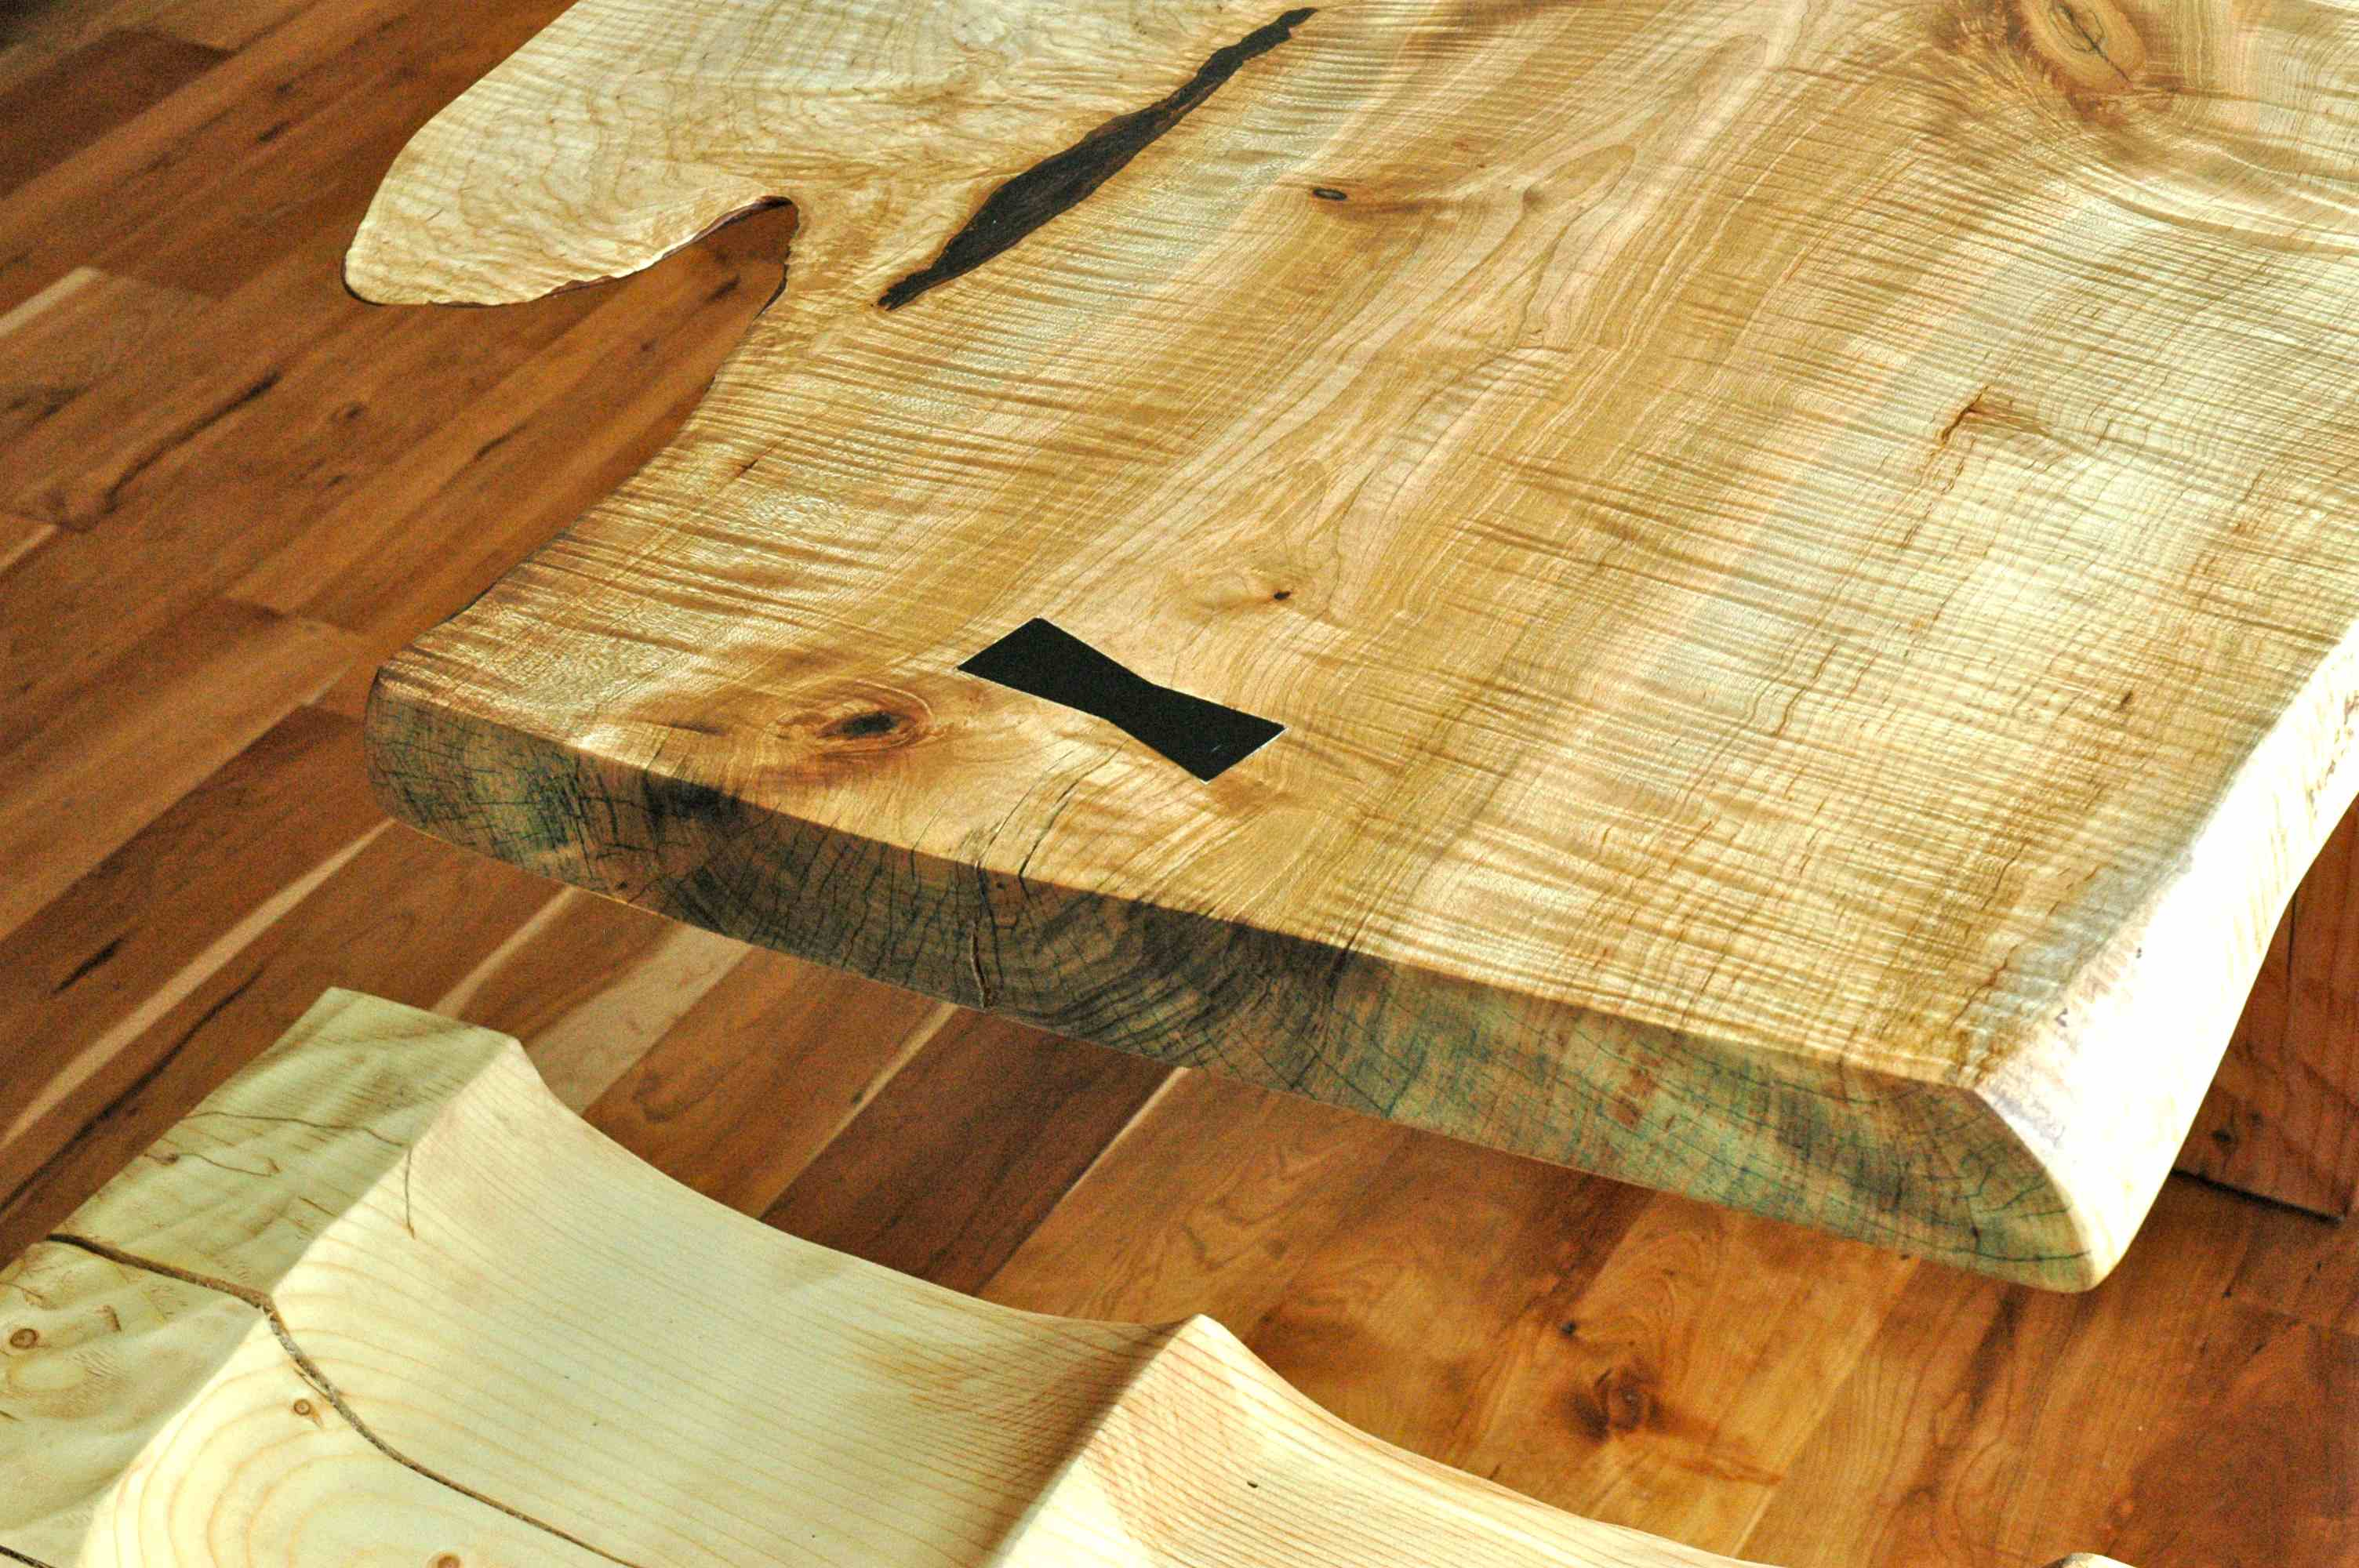 Extremely Curly Maple Slab Custom Dining Table with Sculpted Block Base 1